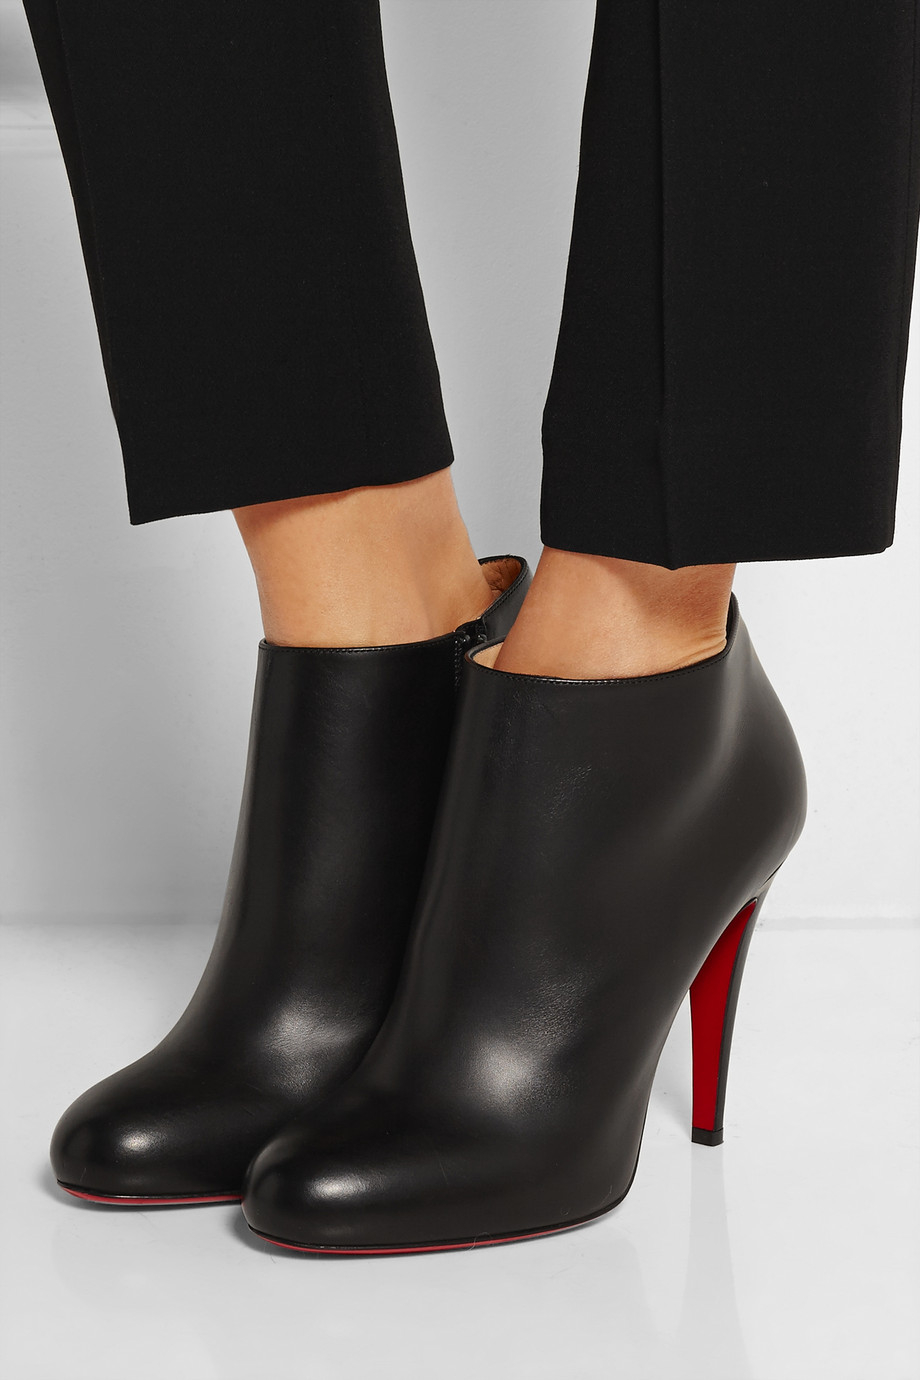 53e8c536b5d Christian Louboutin Belle 100 Leather Ankle Boots in Black - Lyst